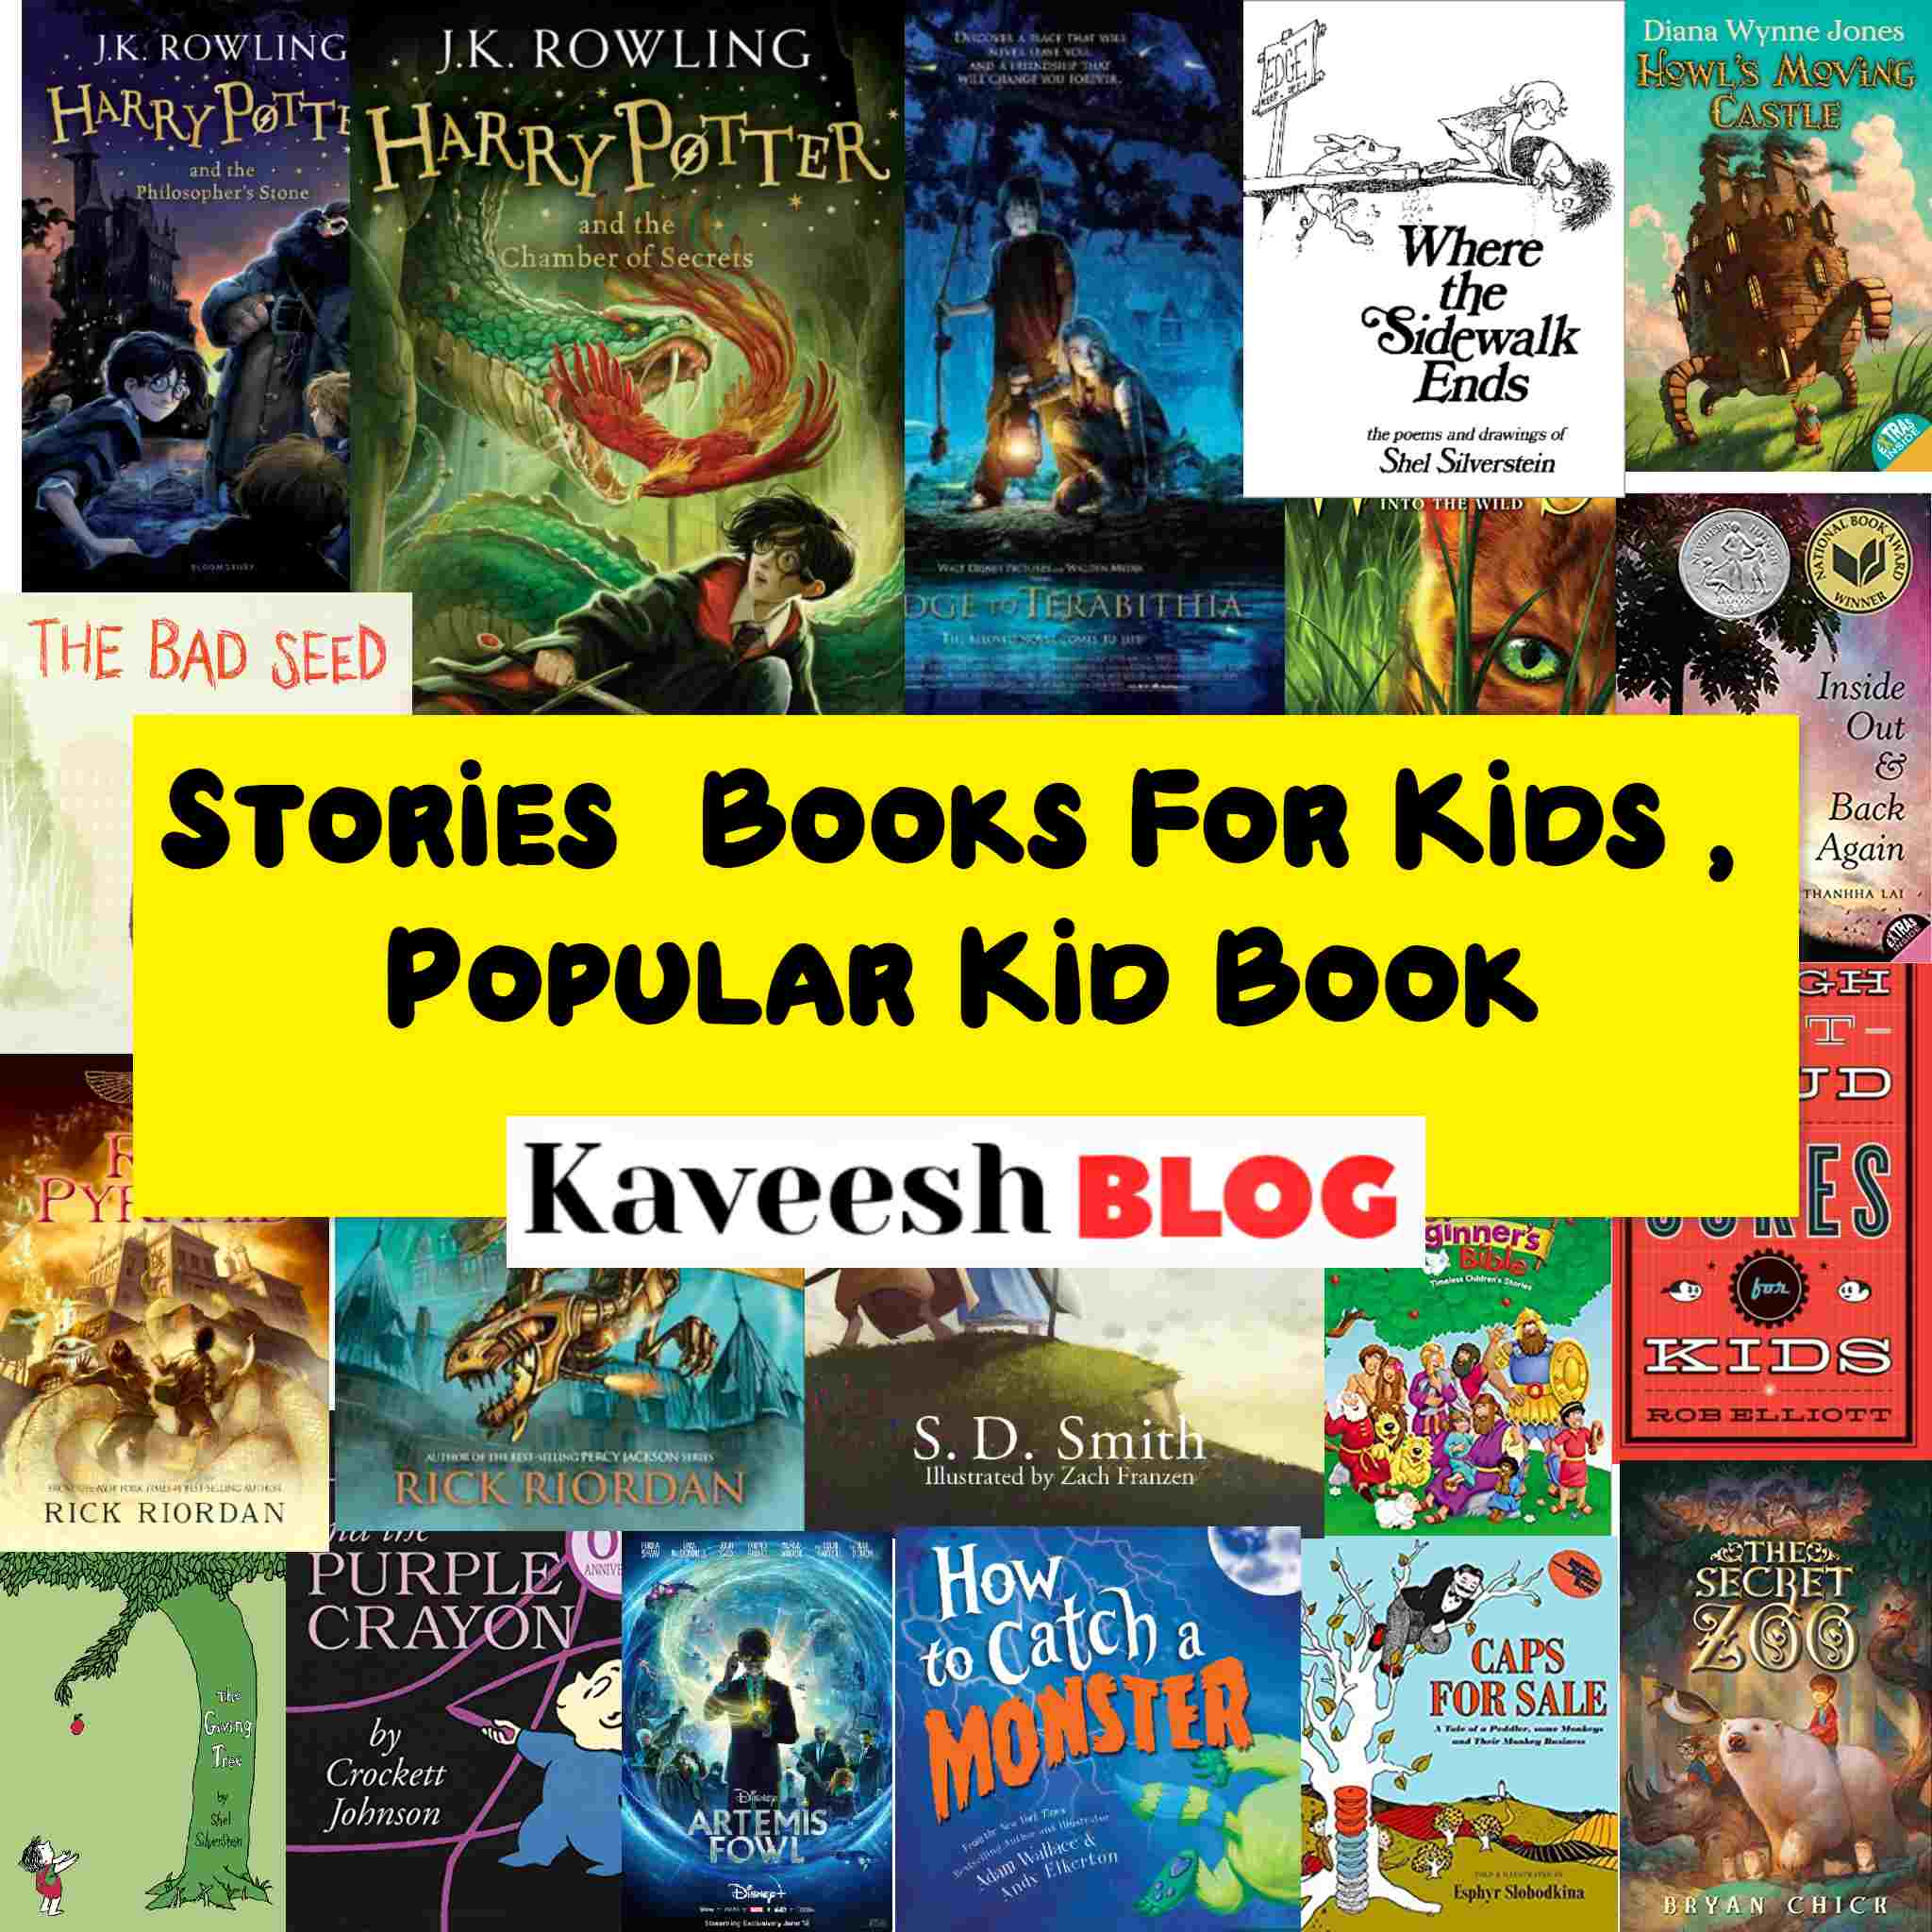 Stories for kids_ Best Sellers Children's Books-popular kid's books in 2020